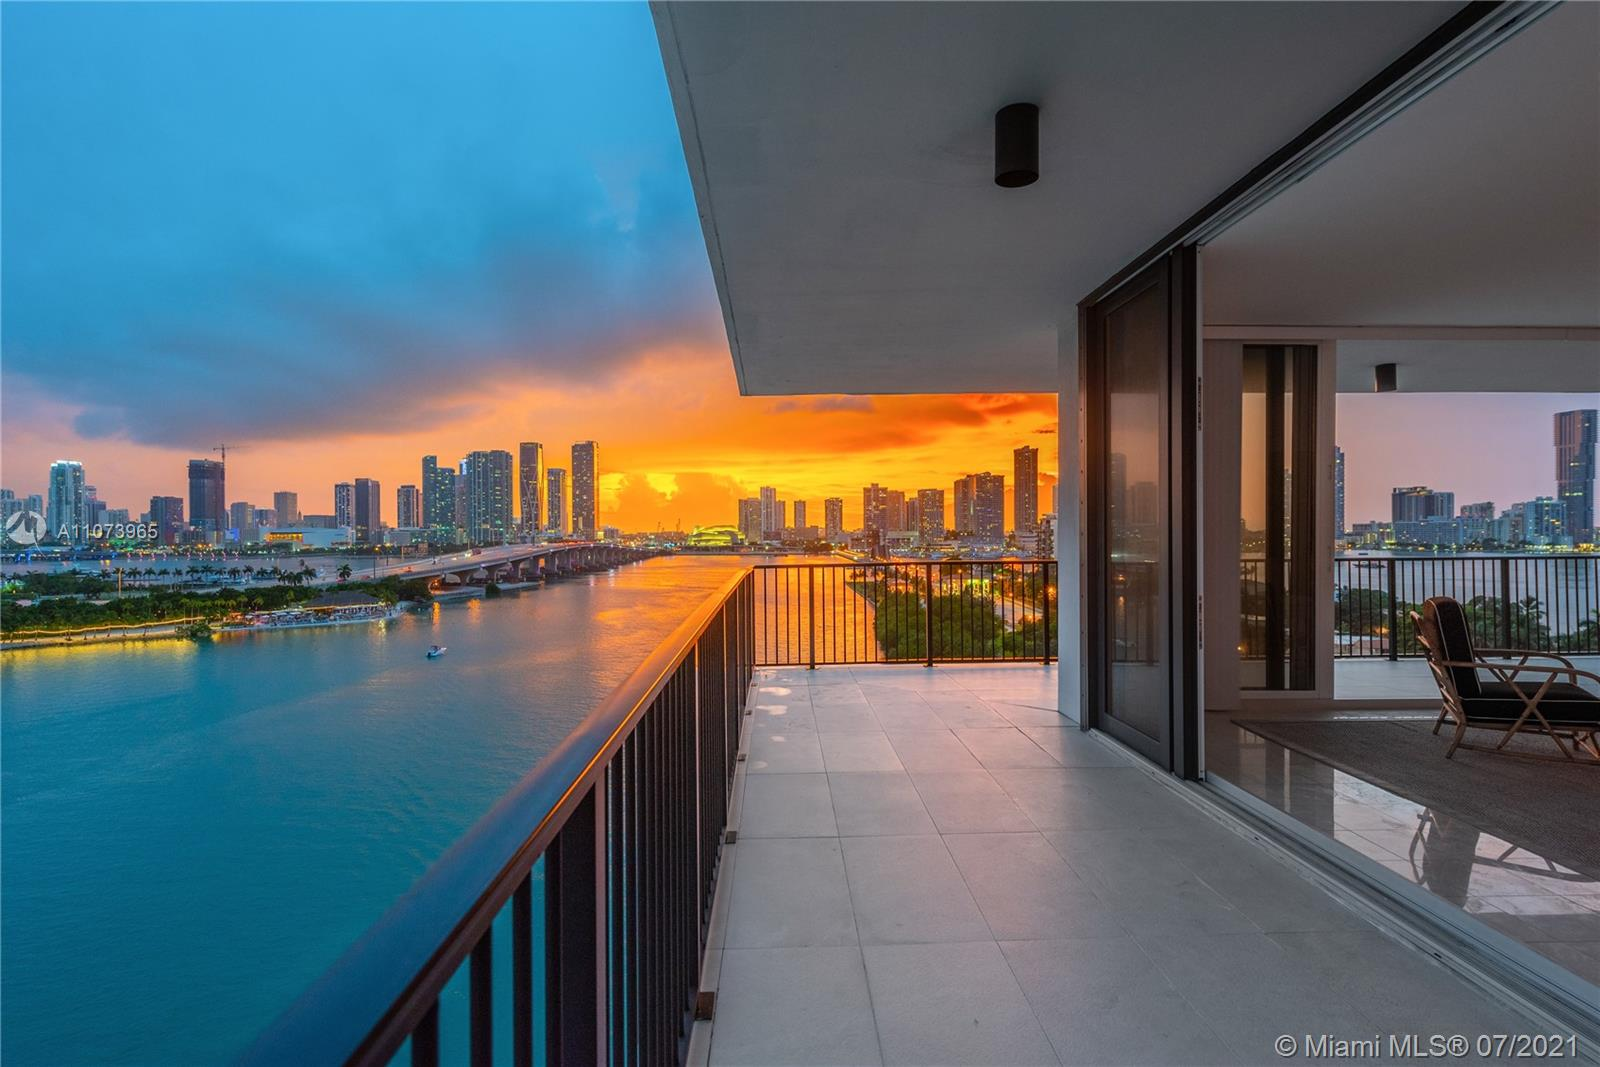 The transition has never been easier: from city, to home, to ocean with the best location and the most iconic views of Miami. Within close distance to the heart of Miami with its cozy and serene surroundings, the most sought-after line in the building, this 2 bedroom/ 2 bath unit is surrounded by spectacular views of Biscayne Bay and the Miami Skyline. The terrace runs the length of the apartment.  The building offers an outdoor picnic area with lush landscaping, as well as tennis and basketball courts, a fully equipped fitness center, two pools, and a spa with sauna. Residents at 1000 Venetian Way Condo can be at any of the city's attractions within minutes.